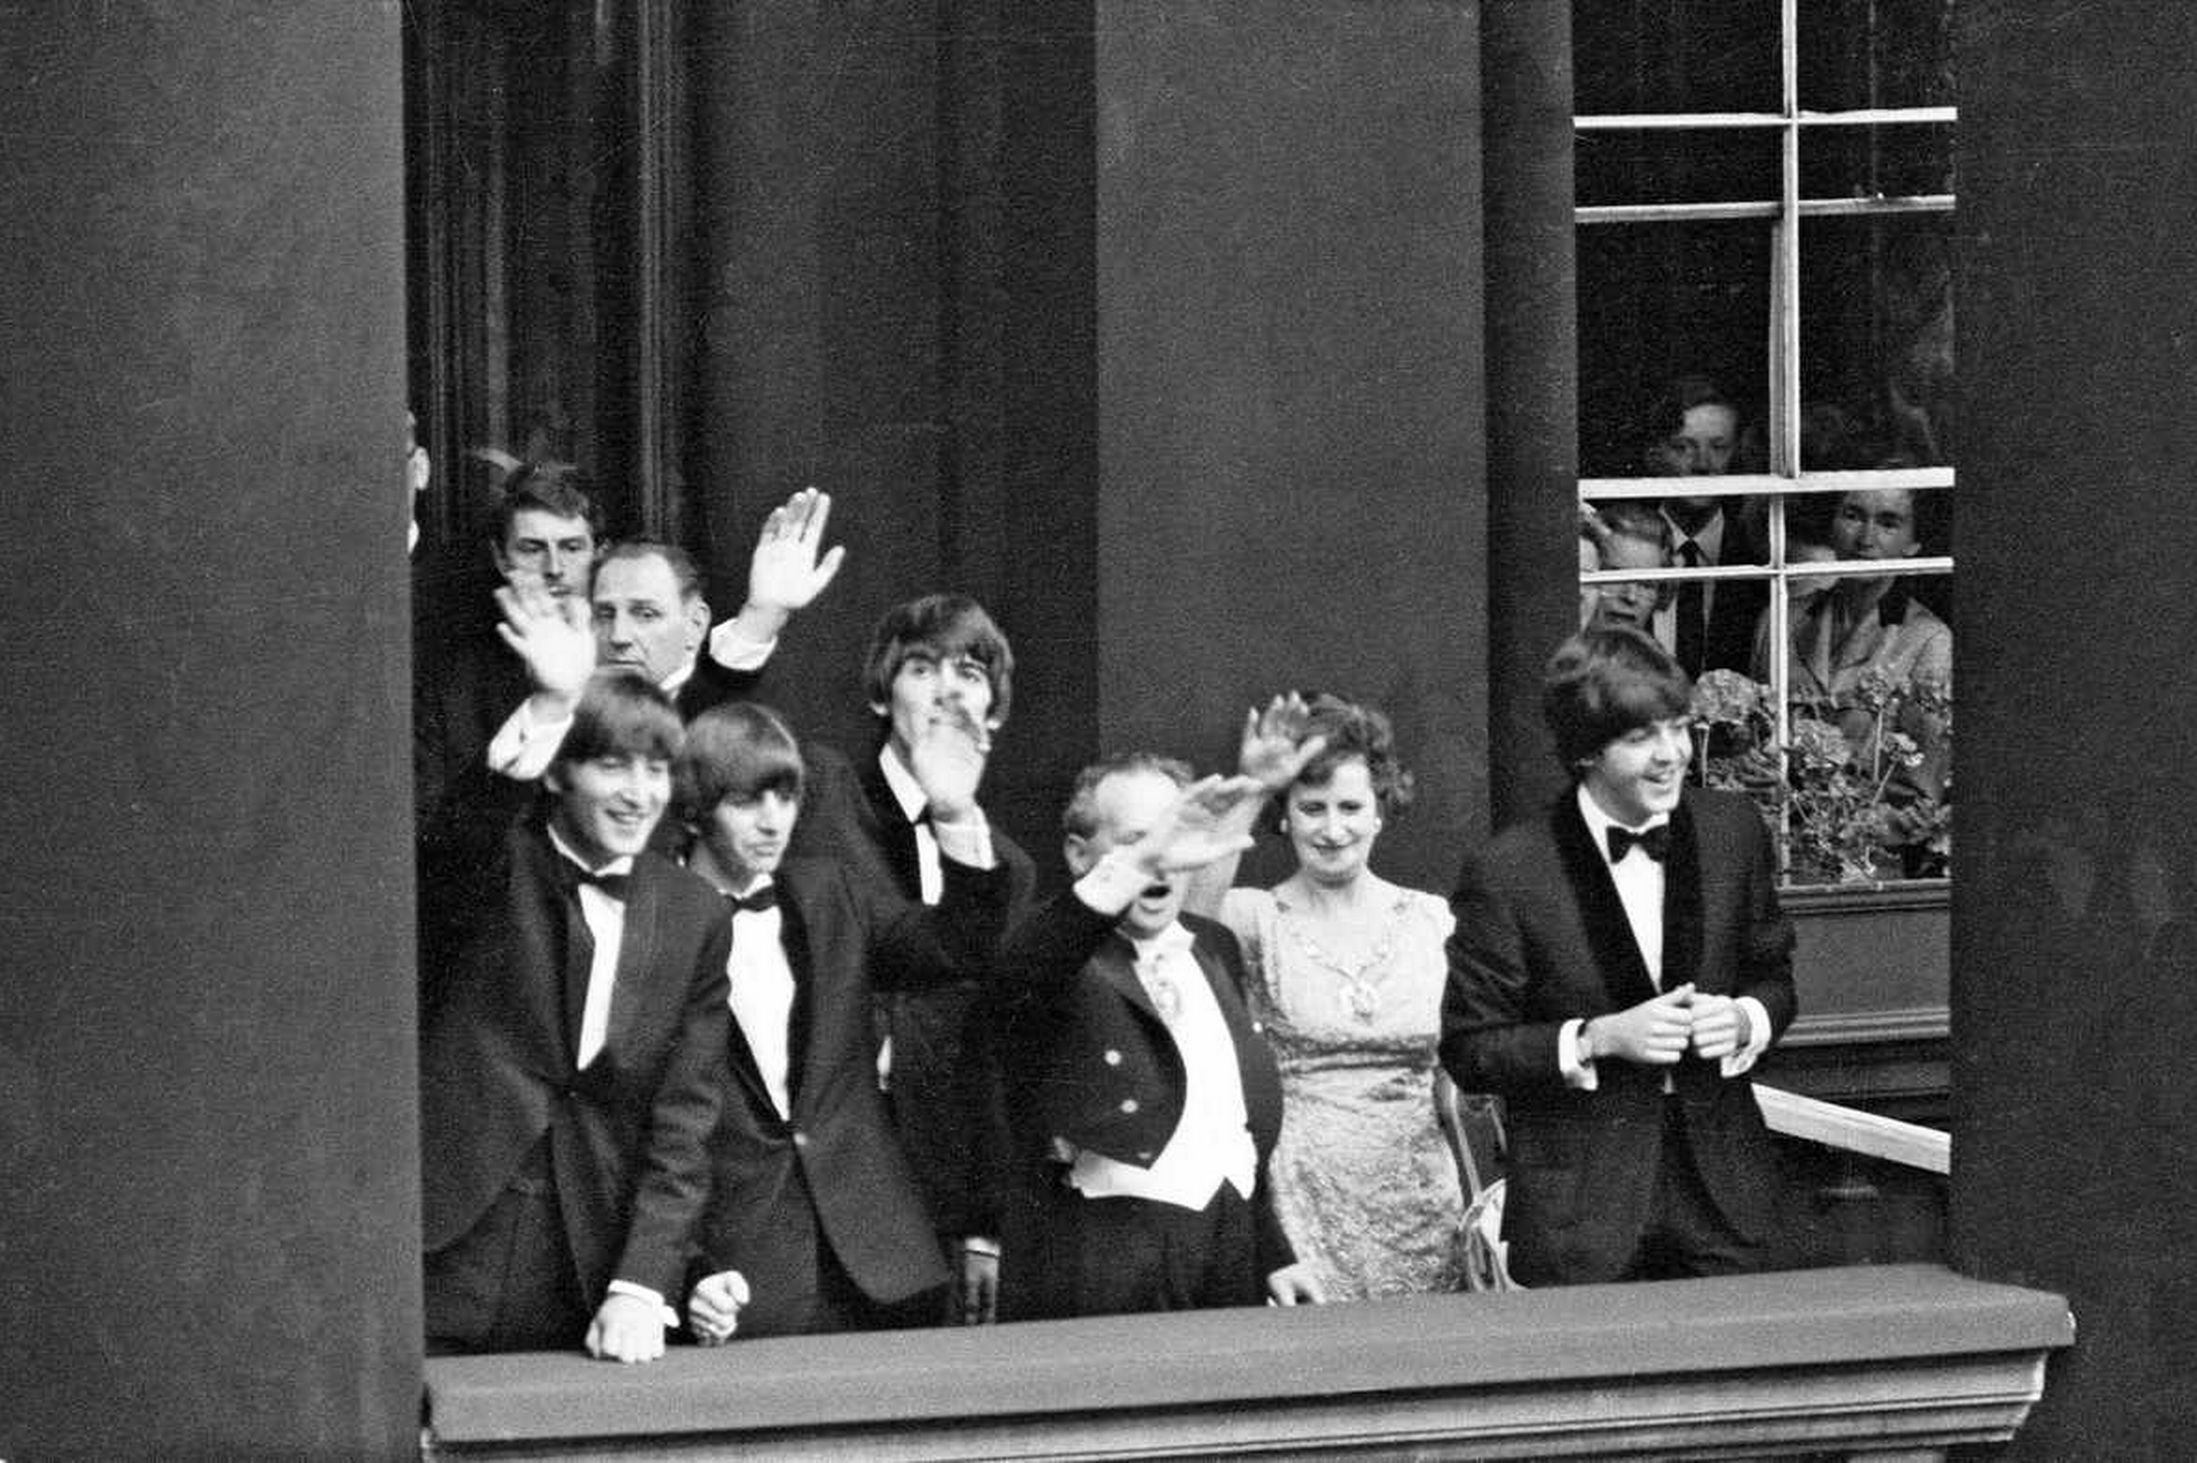 The Beatles in Liverpool for the Premier of a Hard Day's Night. John Lennon, Paul McCartney, Ringo Starr and George Harrison wave from a balcony to crowds of fans in Liverpool. 10th July 1964